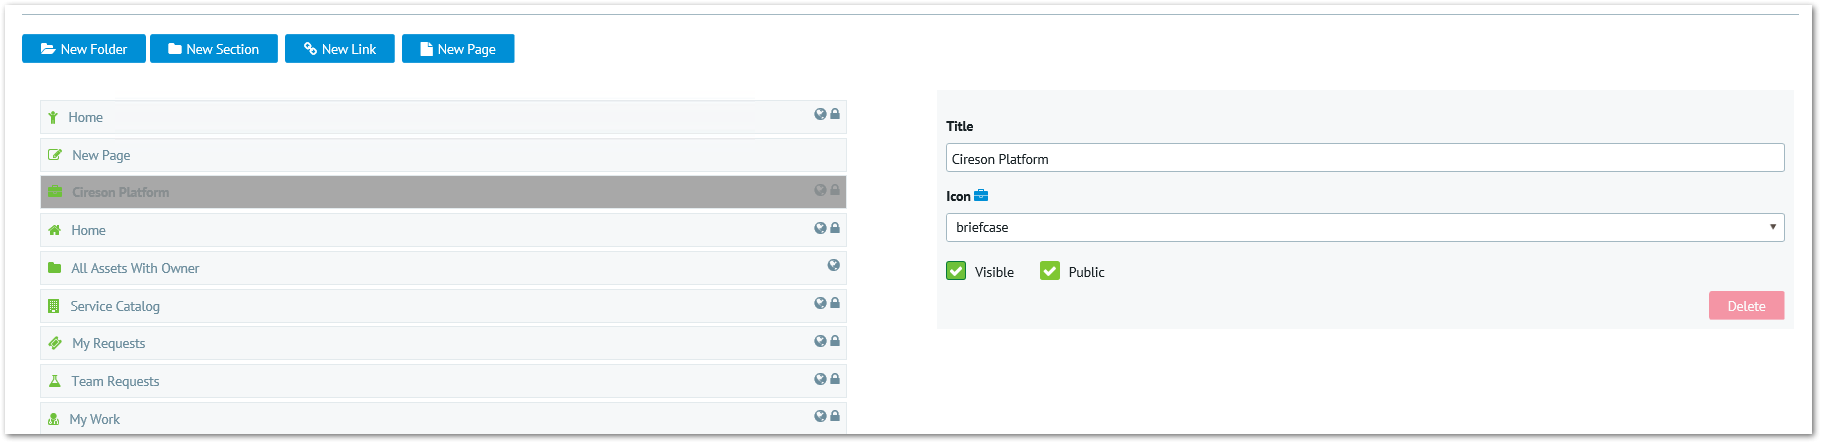 Example: Creating a custom iframe page in the Cireson Portal